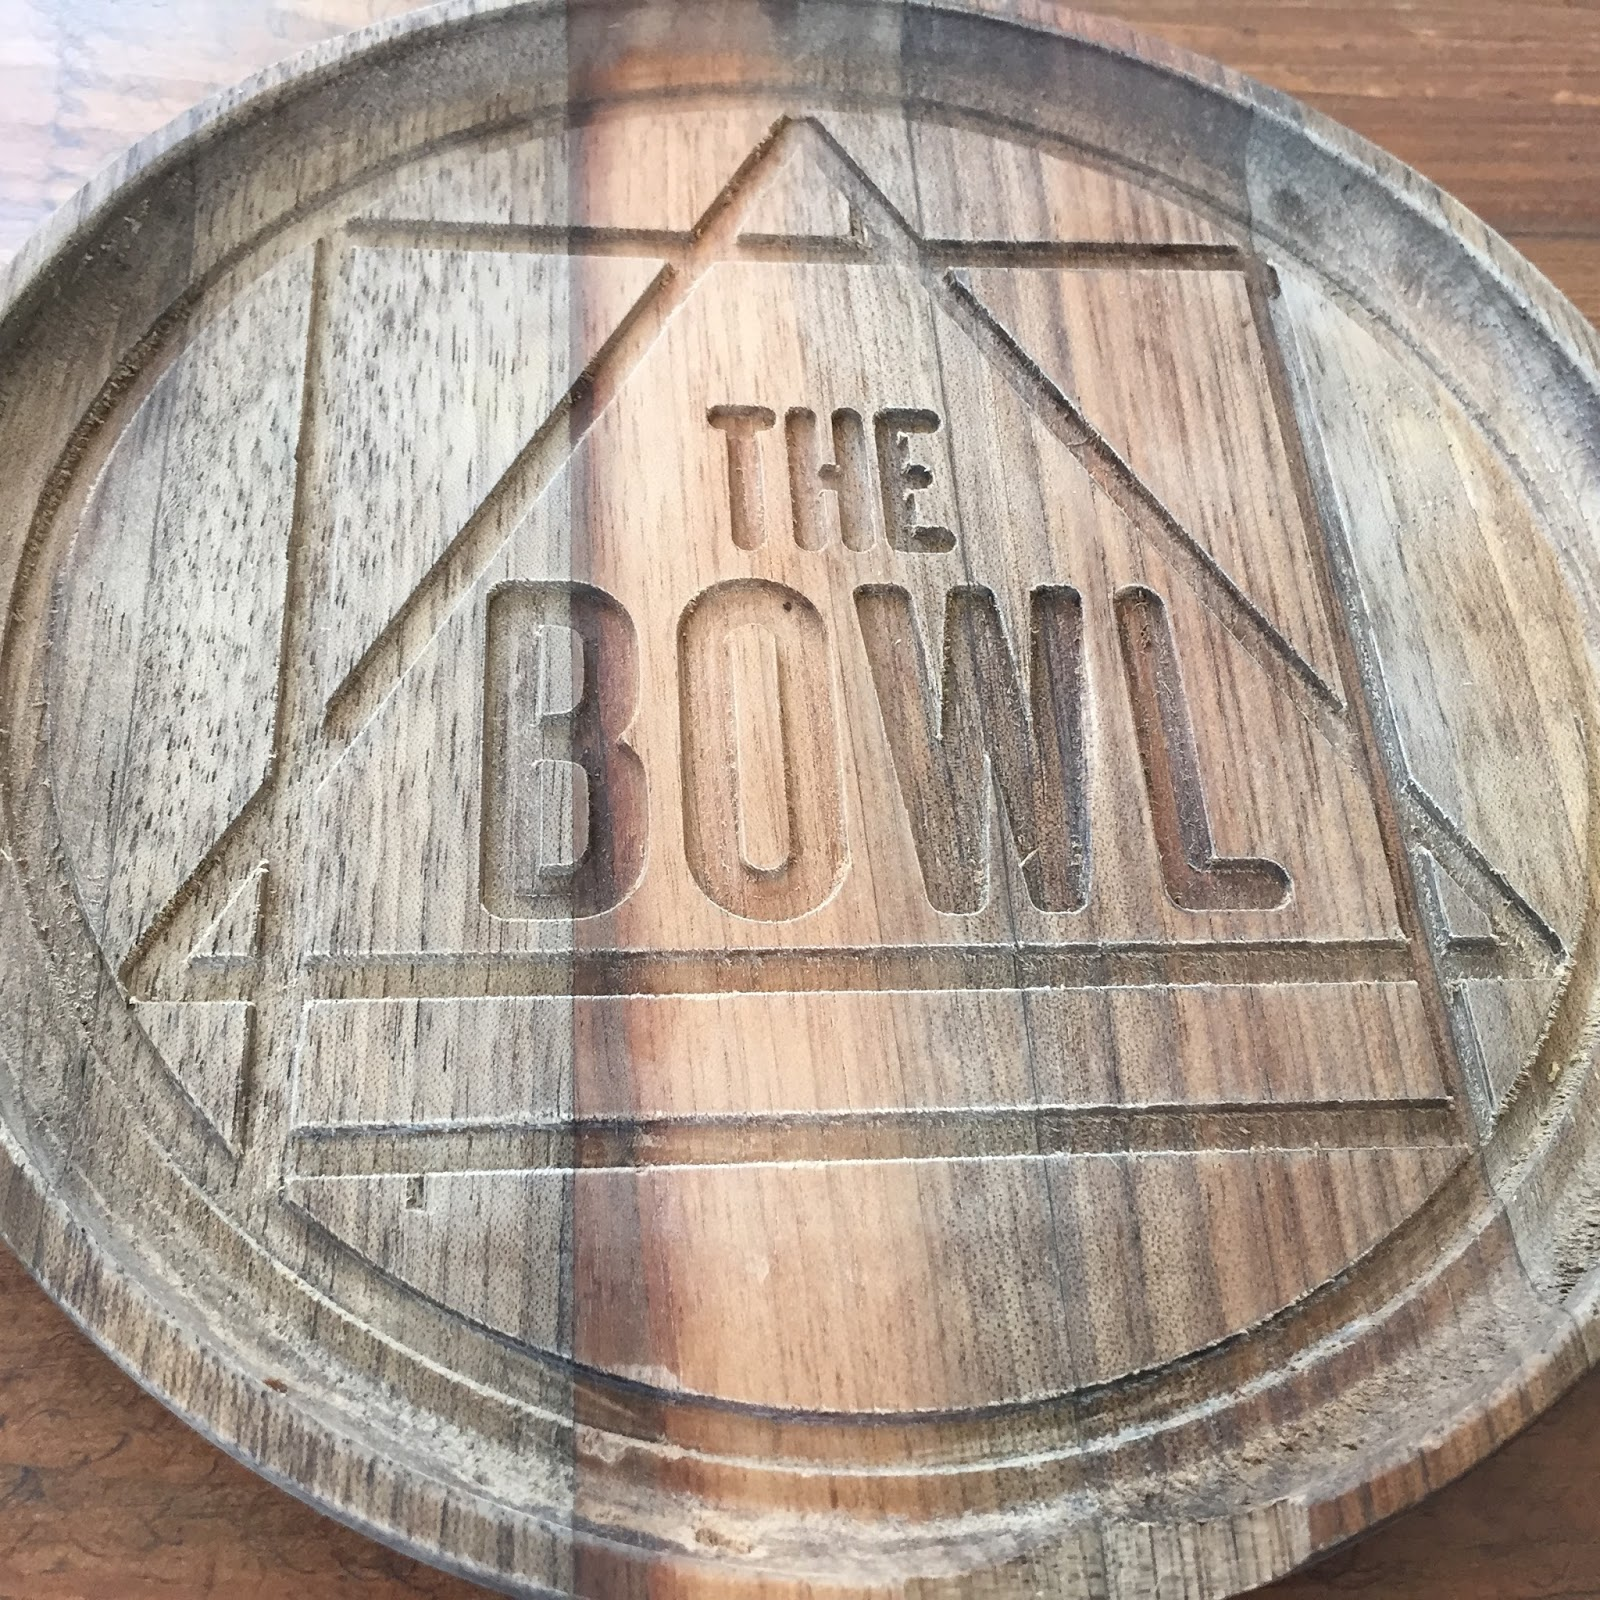 The Bowl Berlin